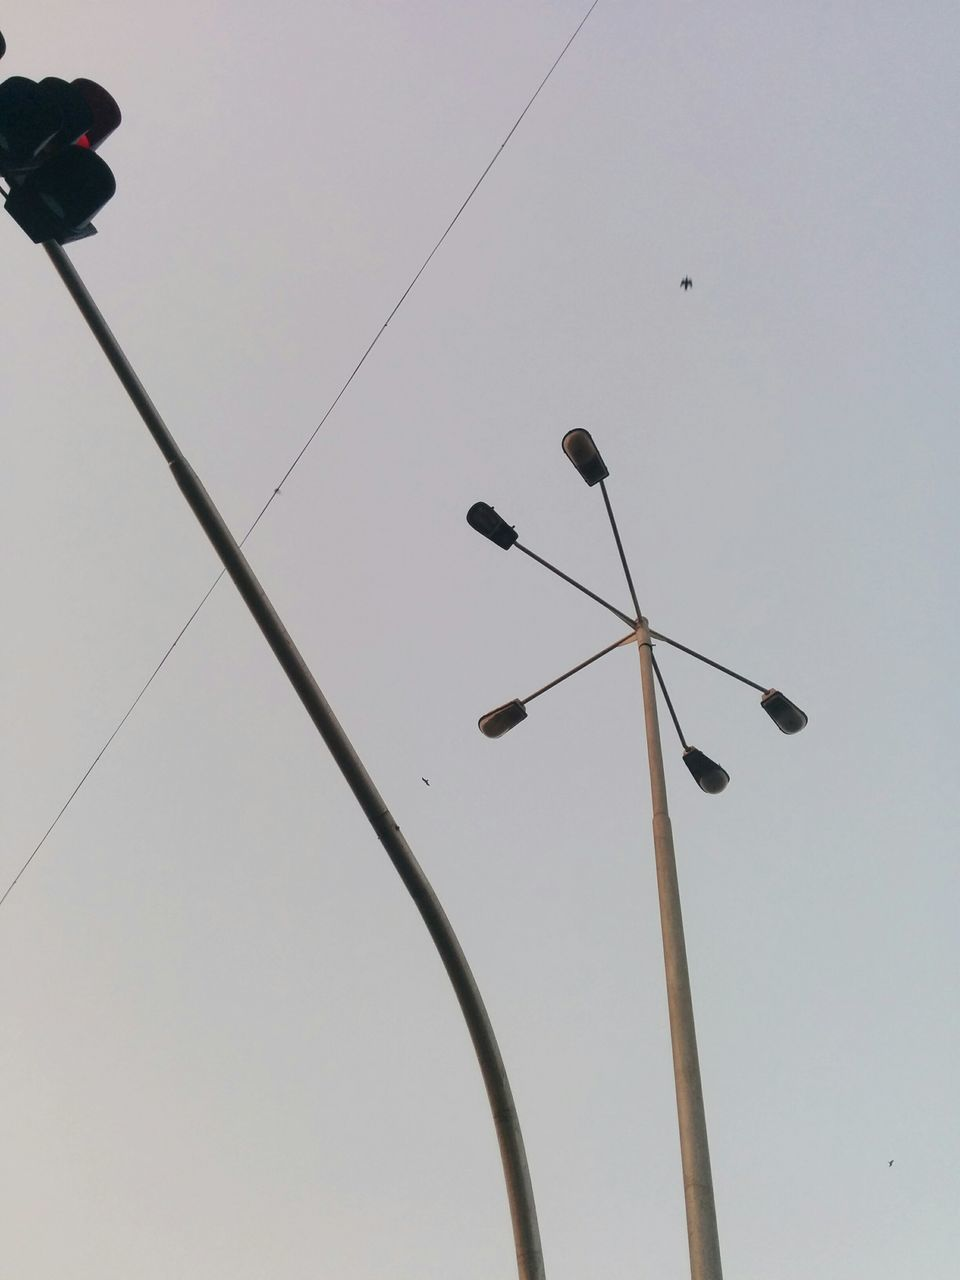 low angle view, cable, technology, connection, street light, electricity, clear sky, communication, day, no people, outdoors, sky, telephone line, perching, bird